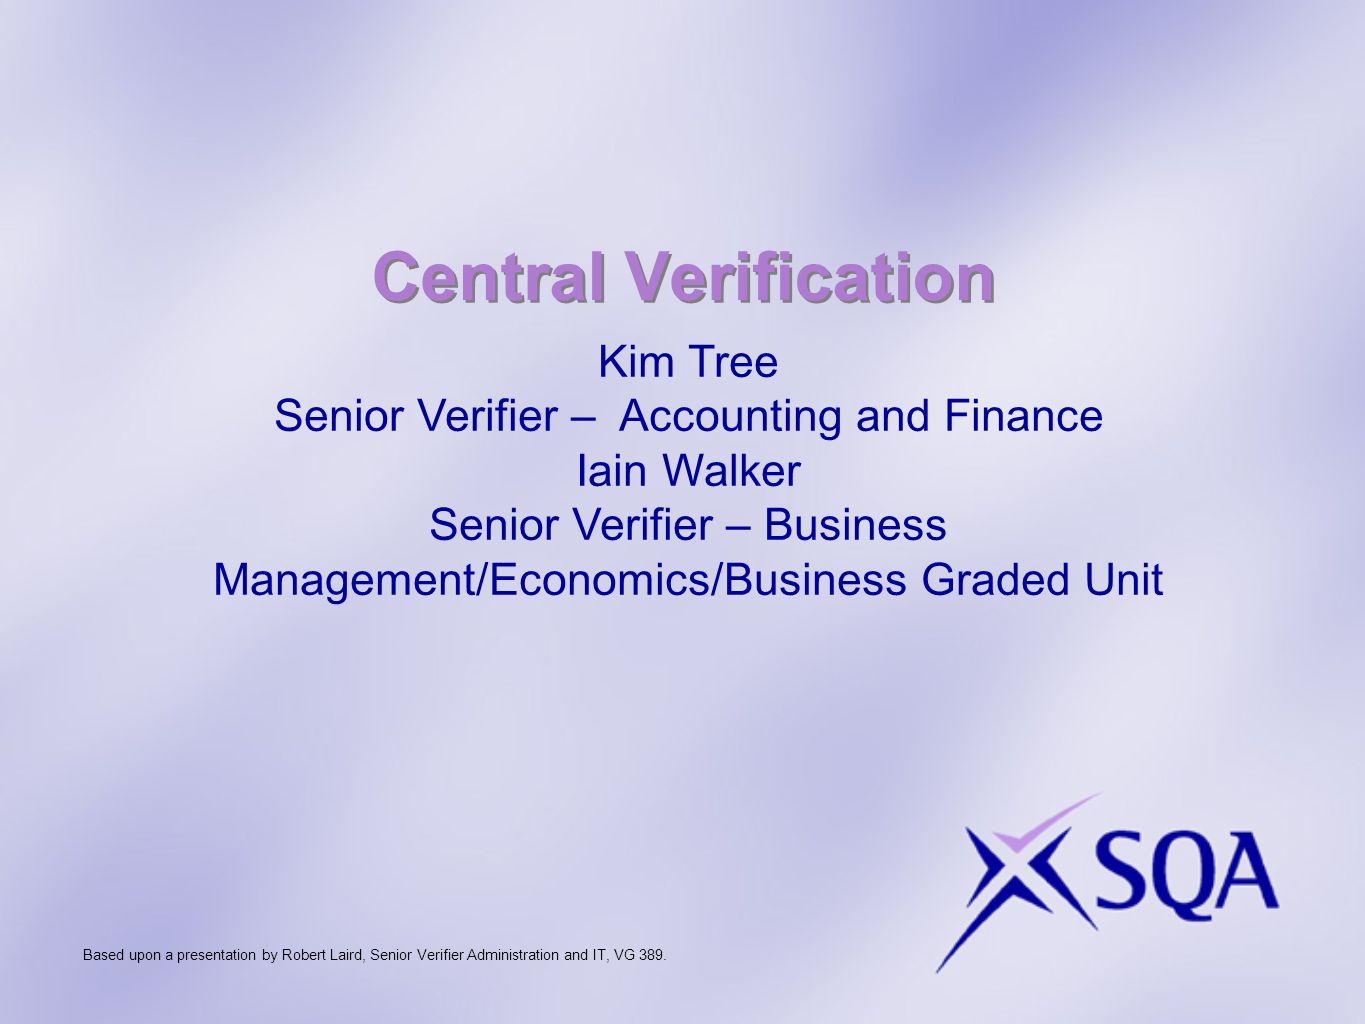 Central Verification Kim Tree Senior Verifier – Accounting and Finance Iain Walker Senior Verifier – Business Management/Economics/Business Graded Unit Based upon a presentation by Robert Laird, Senior Verifier Administration and IT, VG 389.